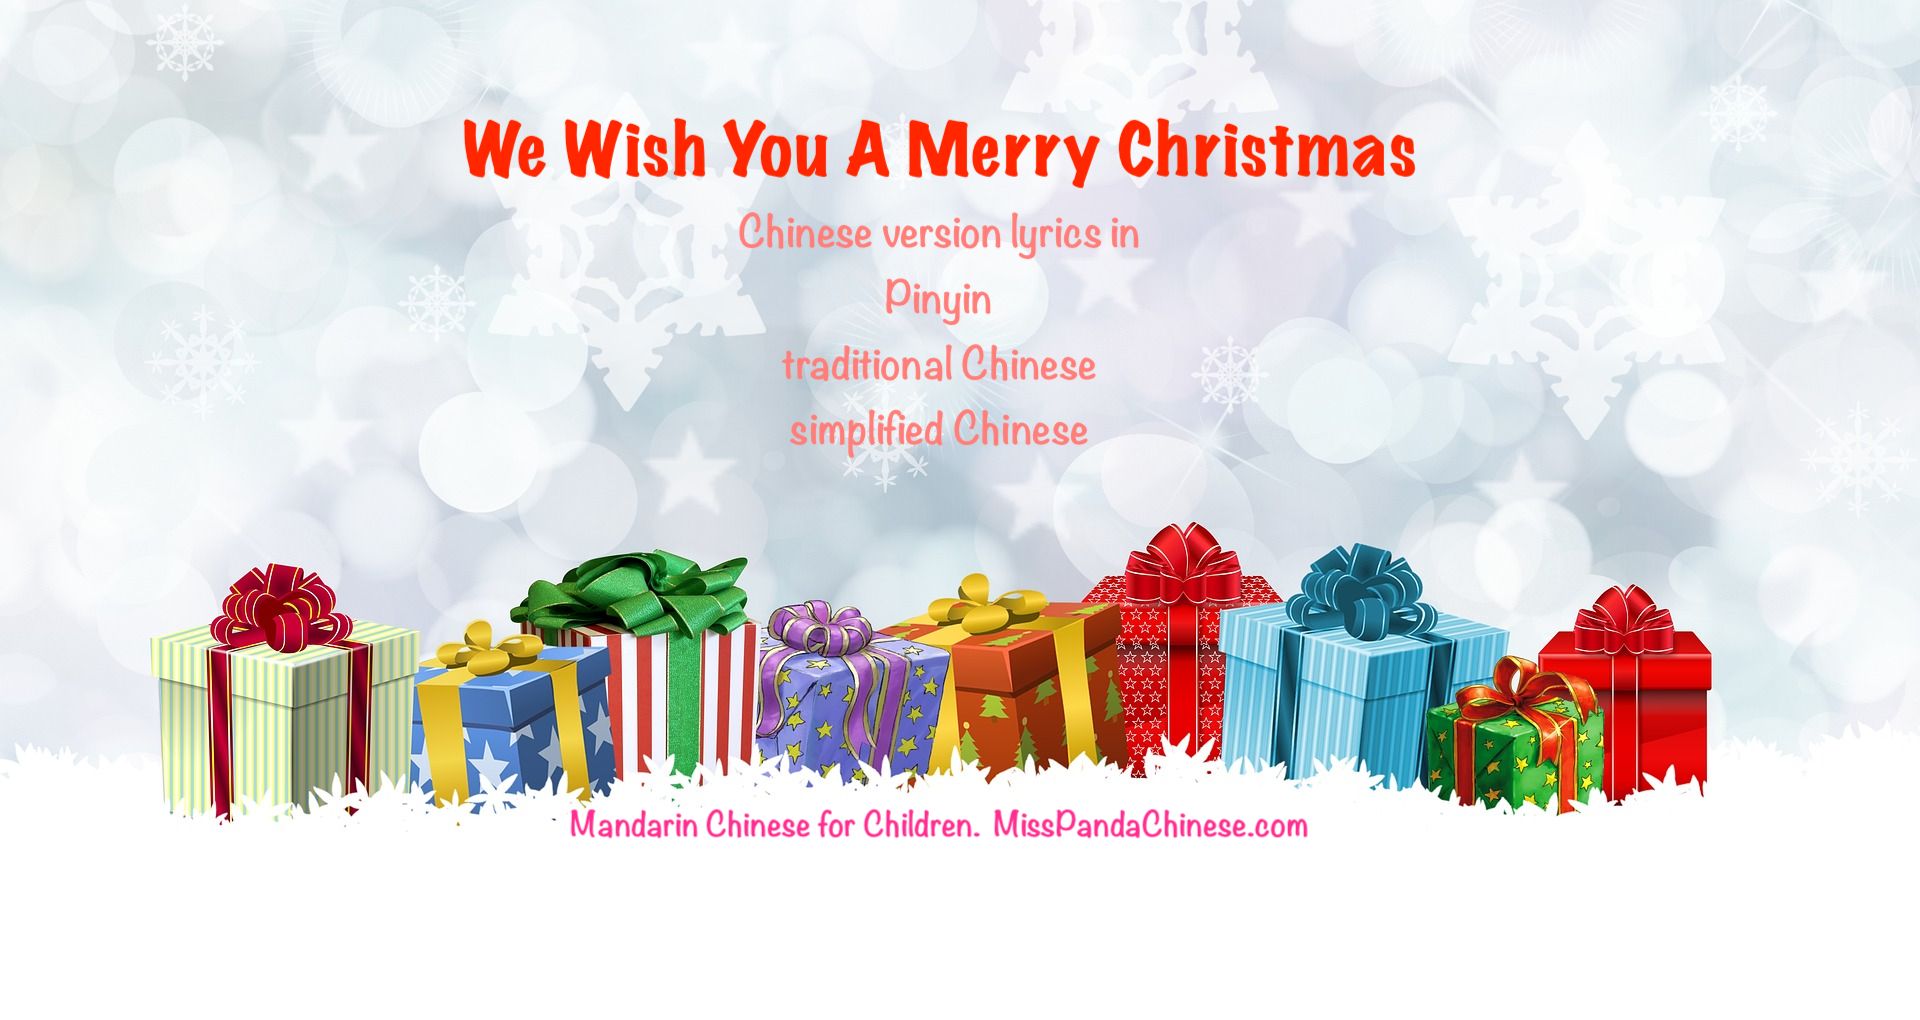 picture about Lyrics to We Wish You a Merry Christmas Printable referred to as Chinese We Need Yourself A Merry Xmas Music Lyrics